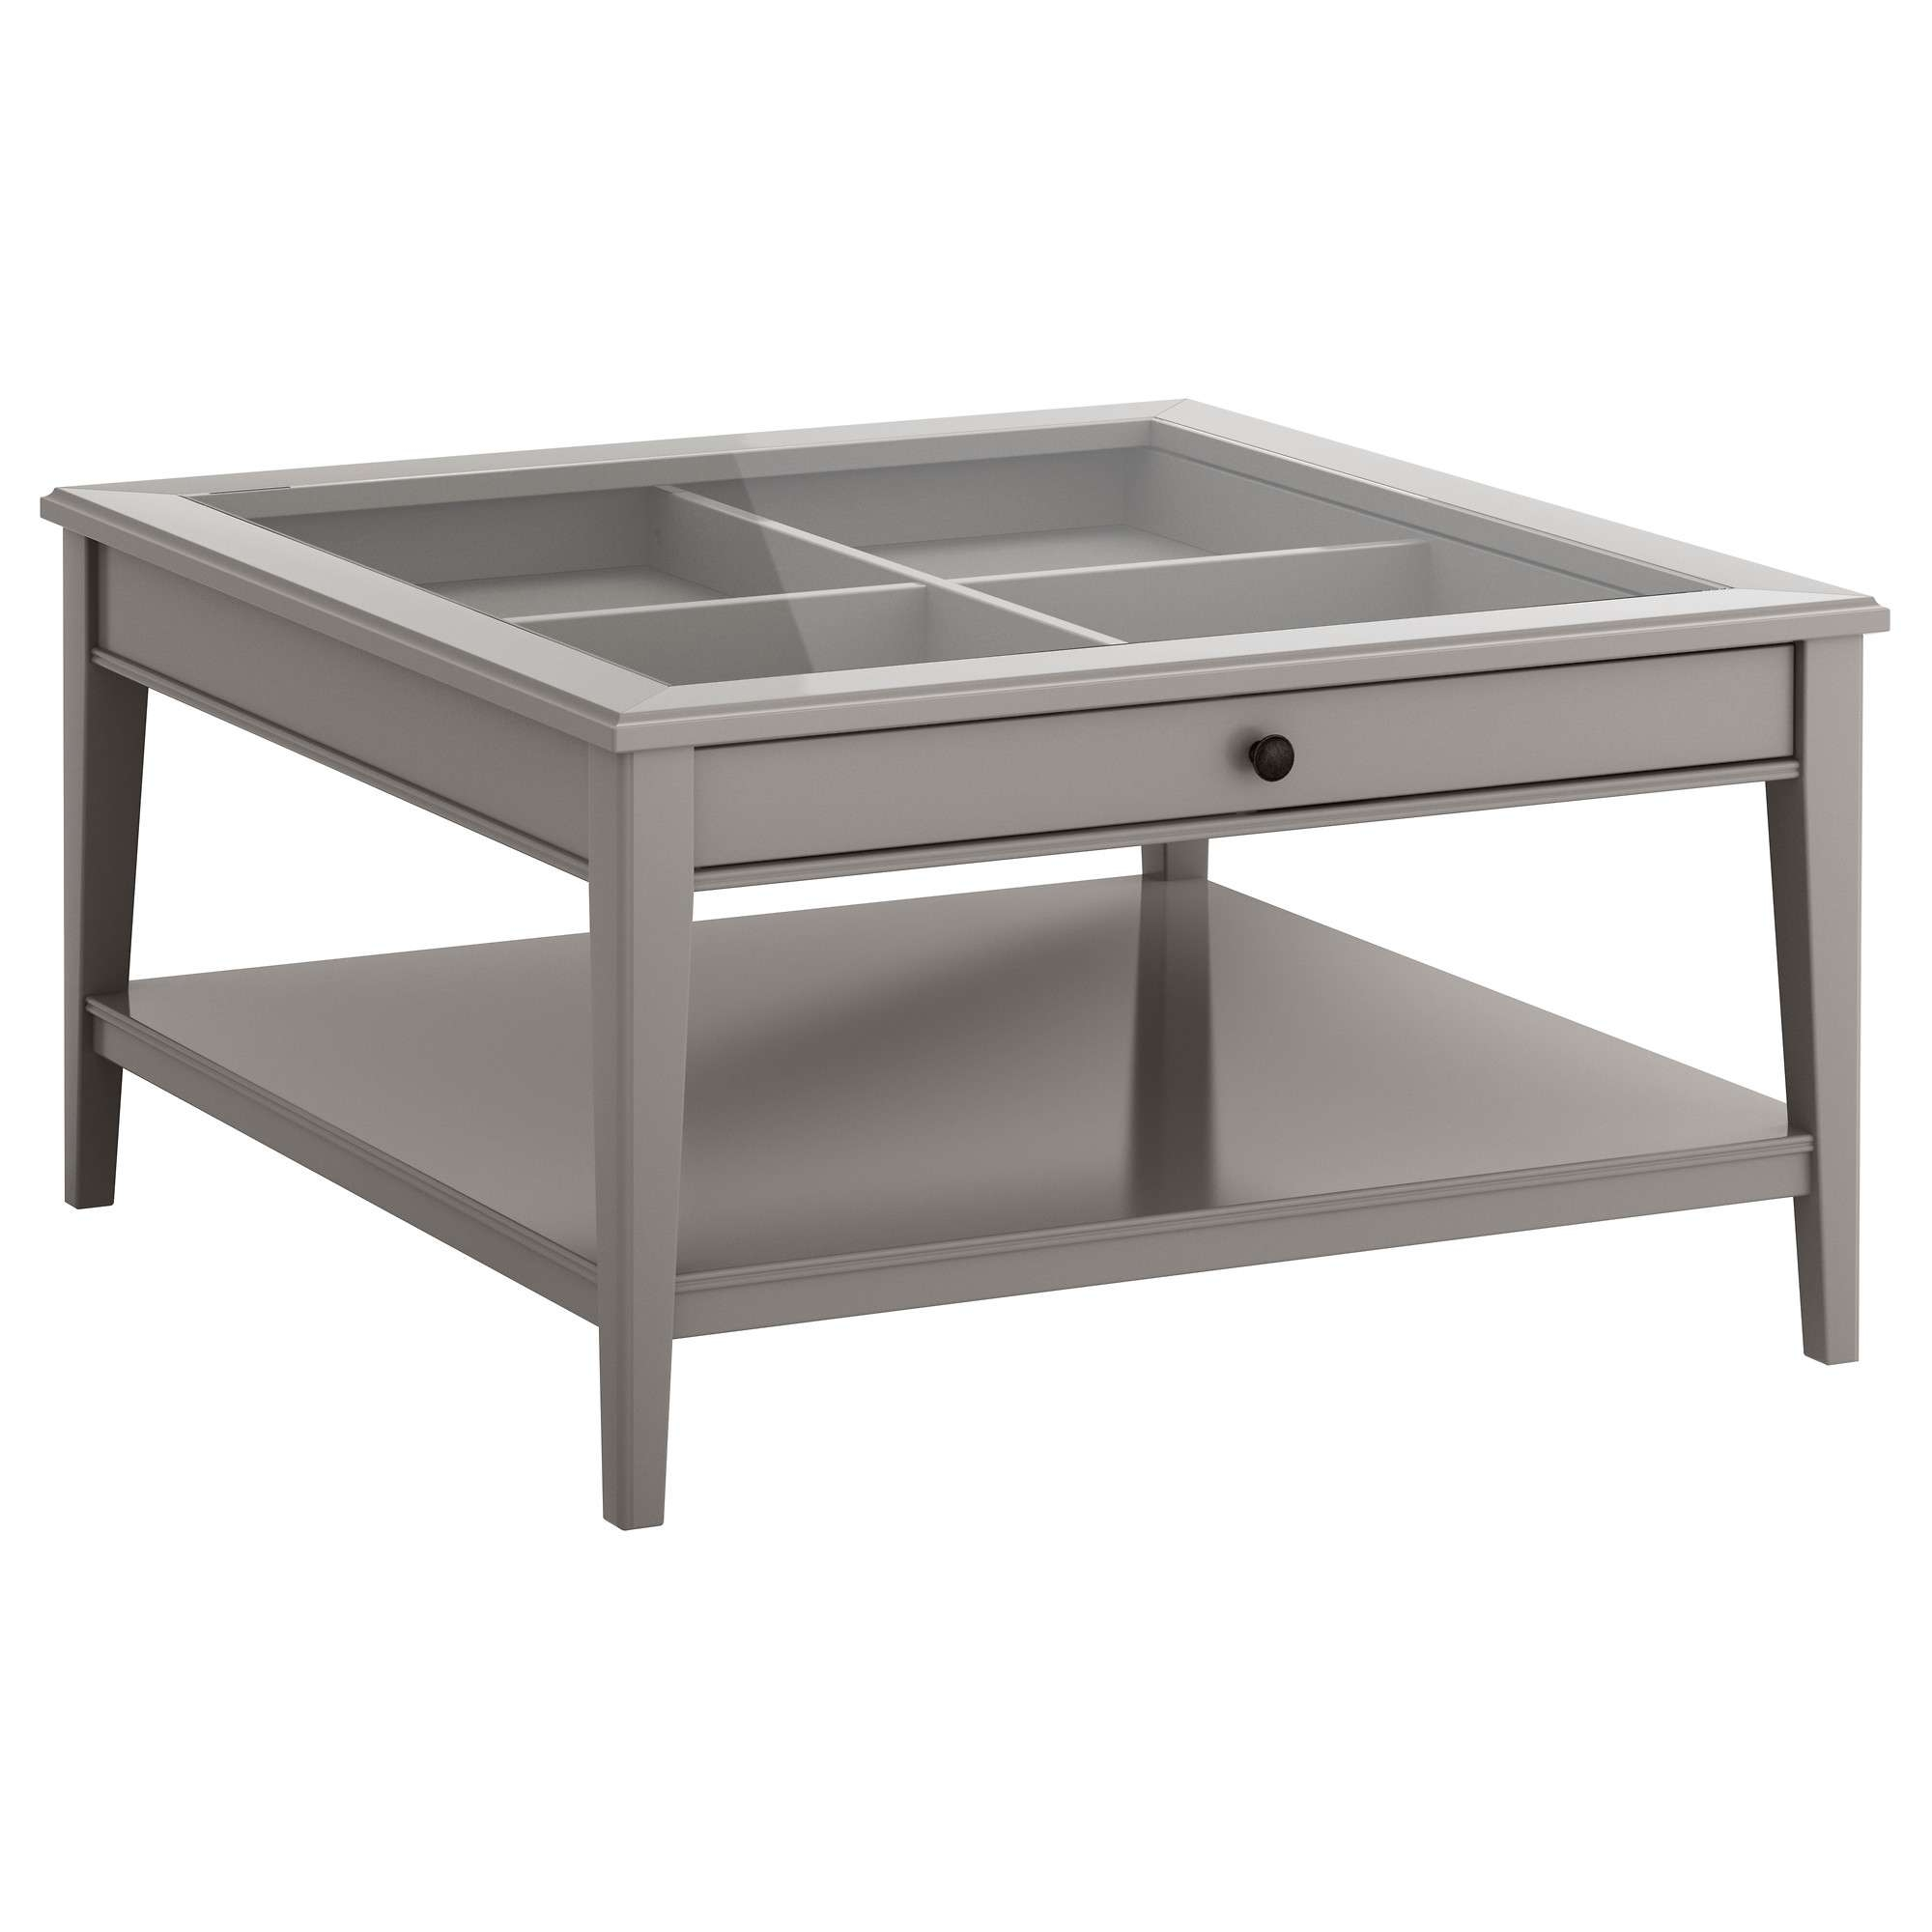 Liatorp Coffee Table – Gray/glass – Ikea For Most Recent Grey Coffee Tables (View 4 of 20)